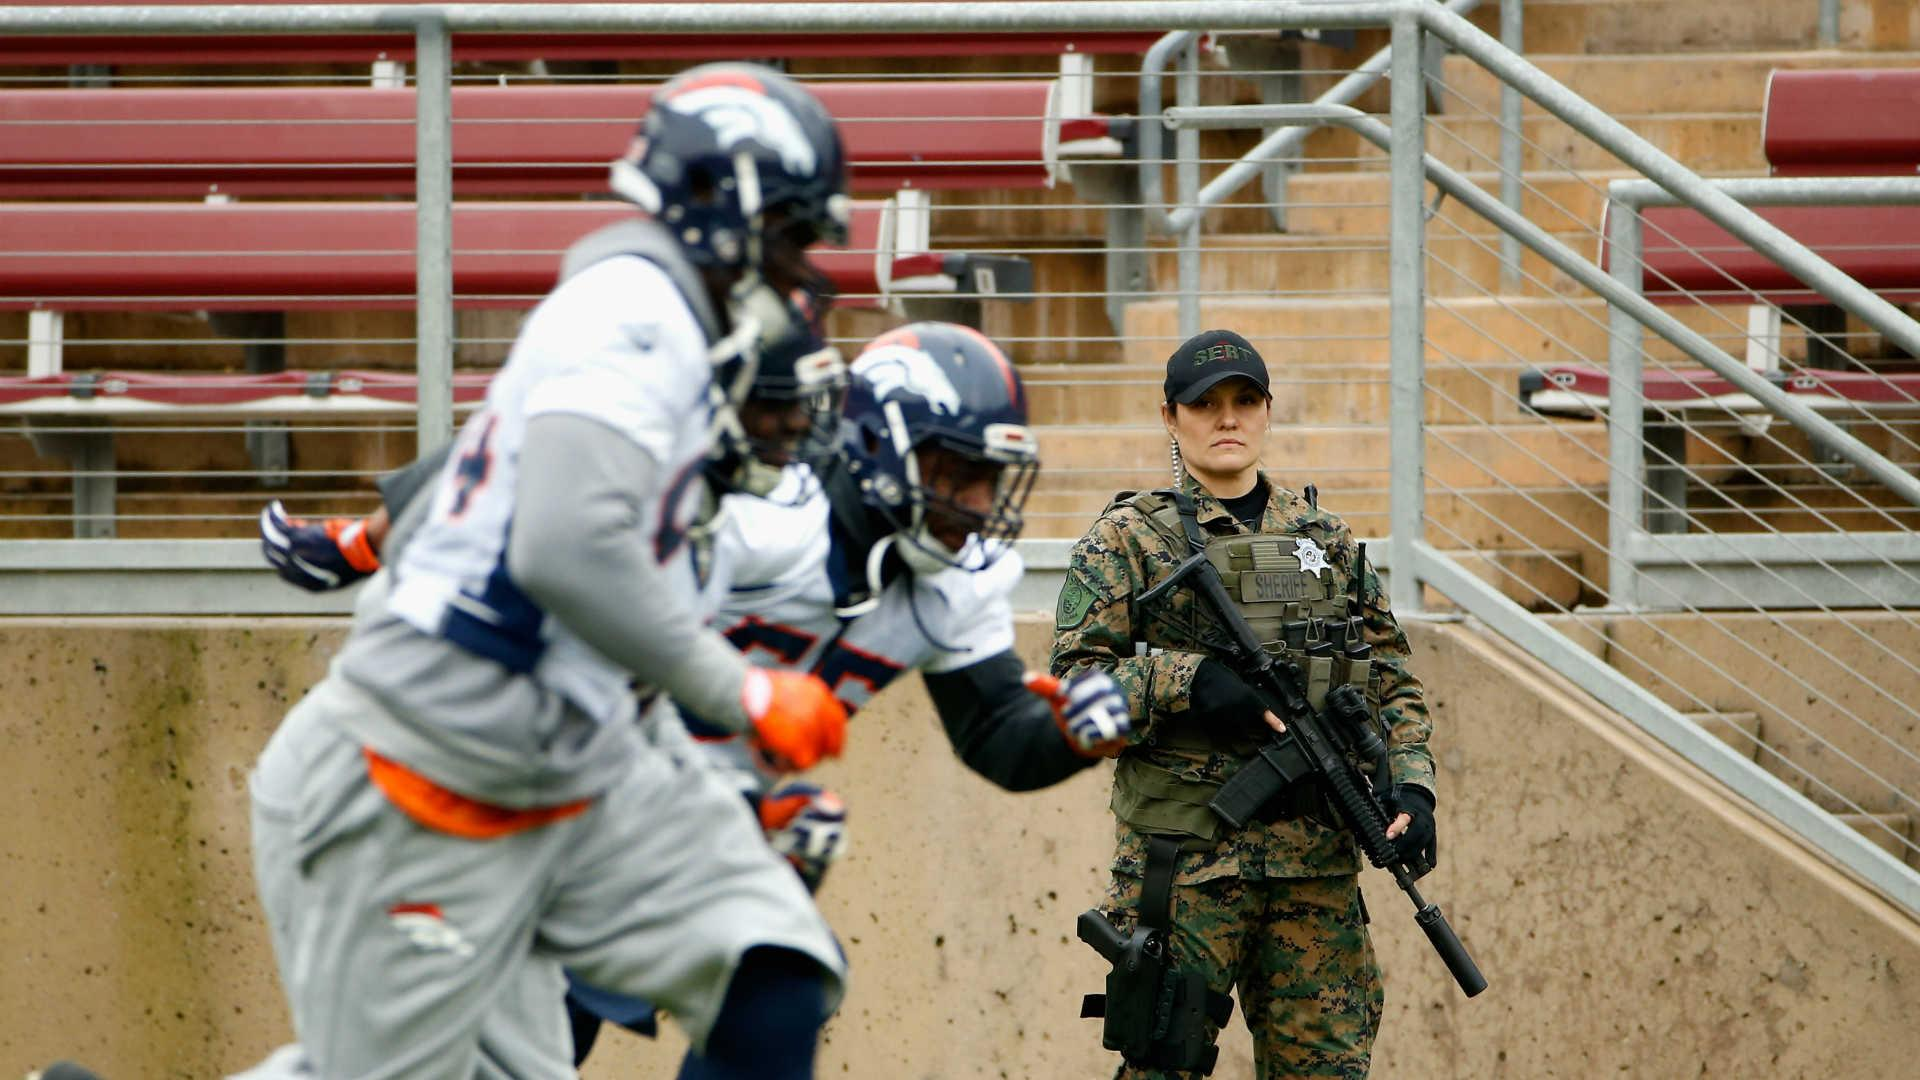 Homeland Security says Bay Area safe ahead of Super Bowl 50